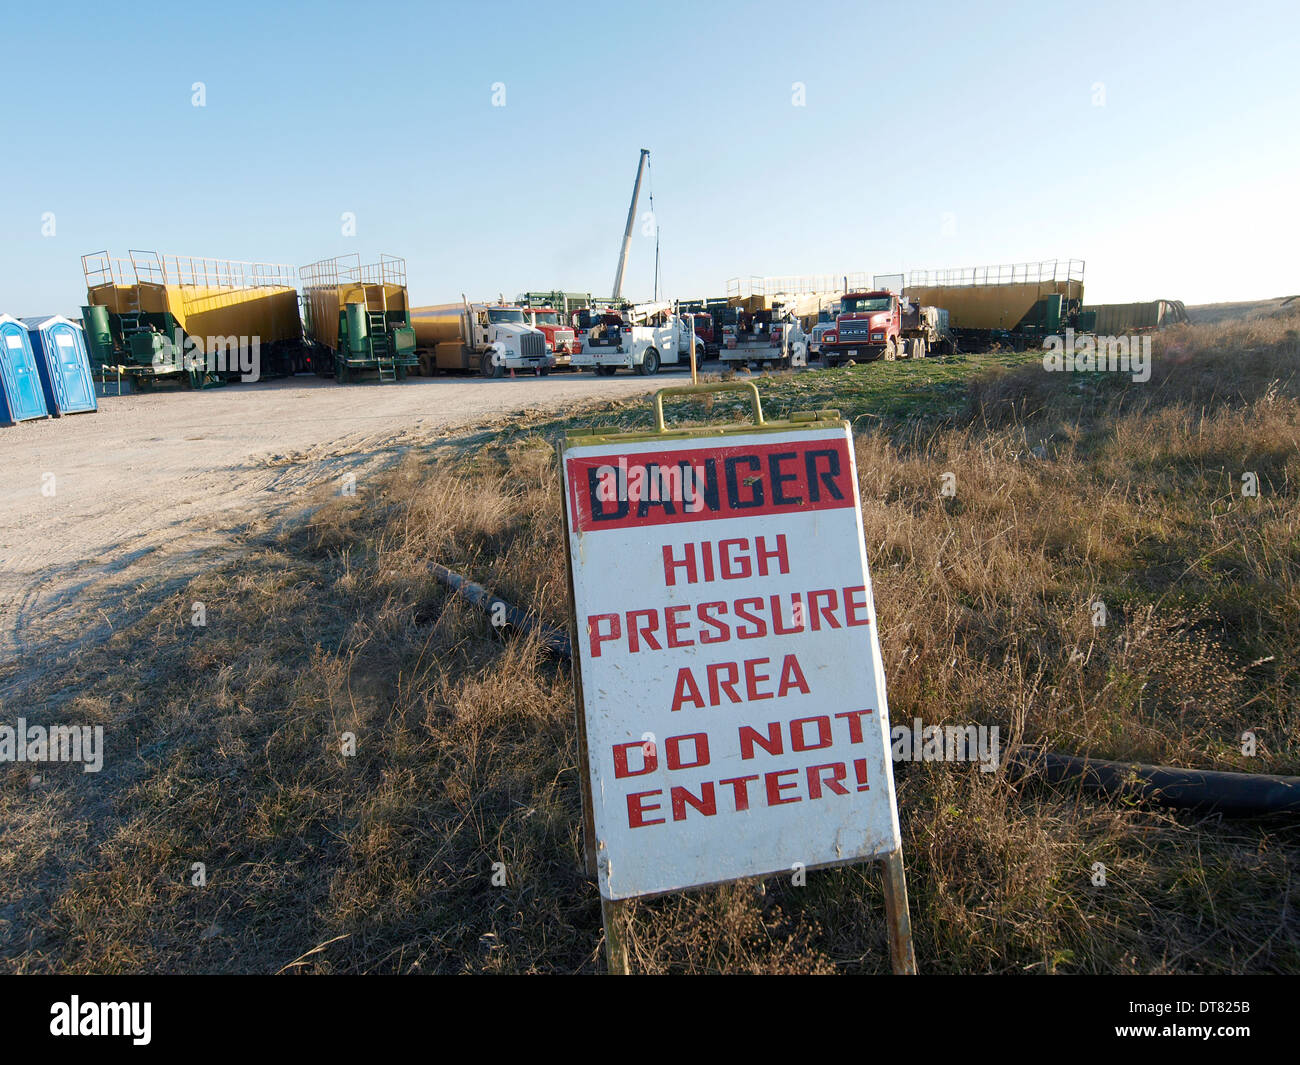 Crew prepares hydraulic fracturing of well site in Texas - Stock Image